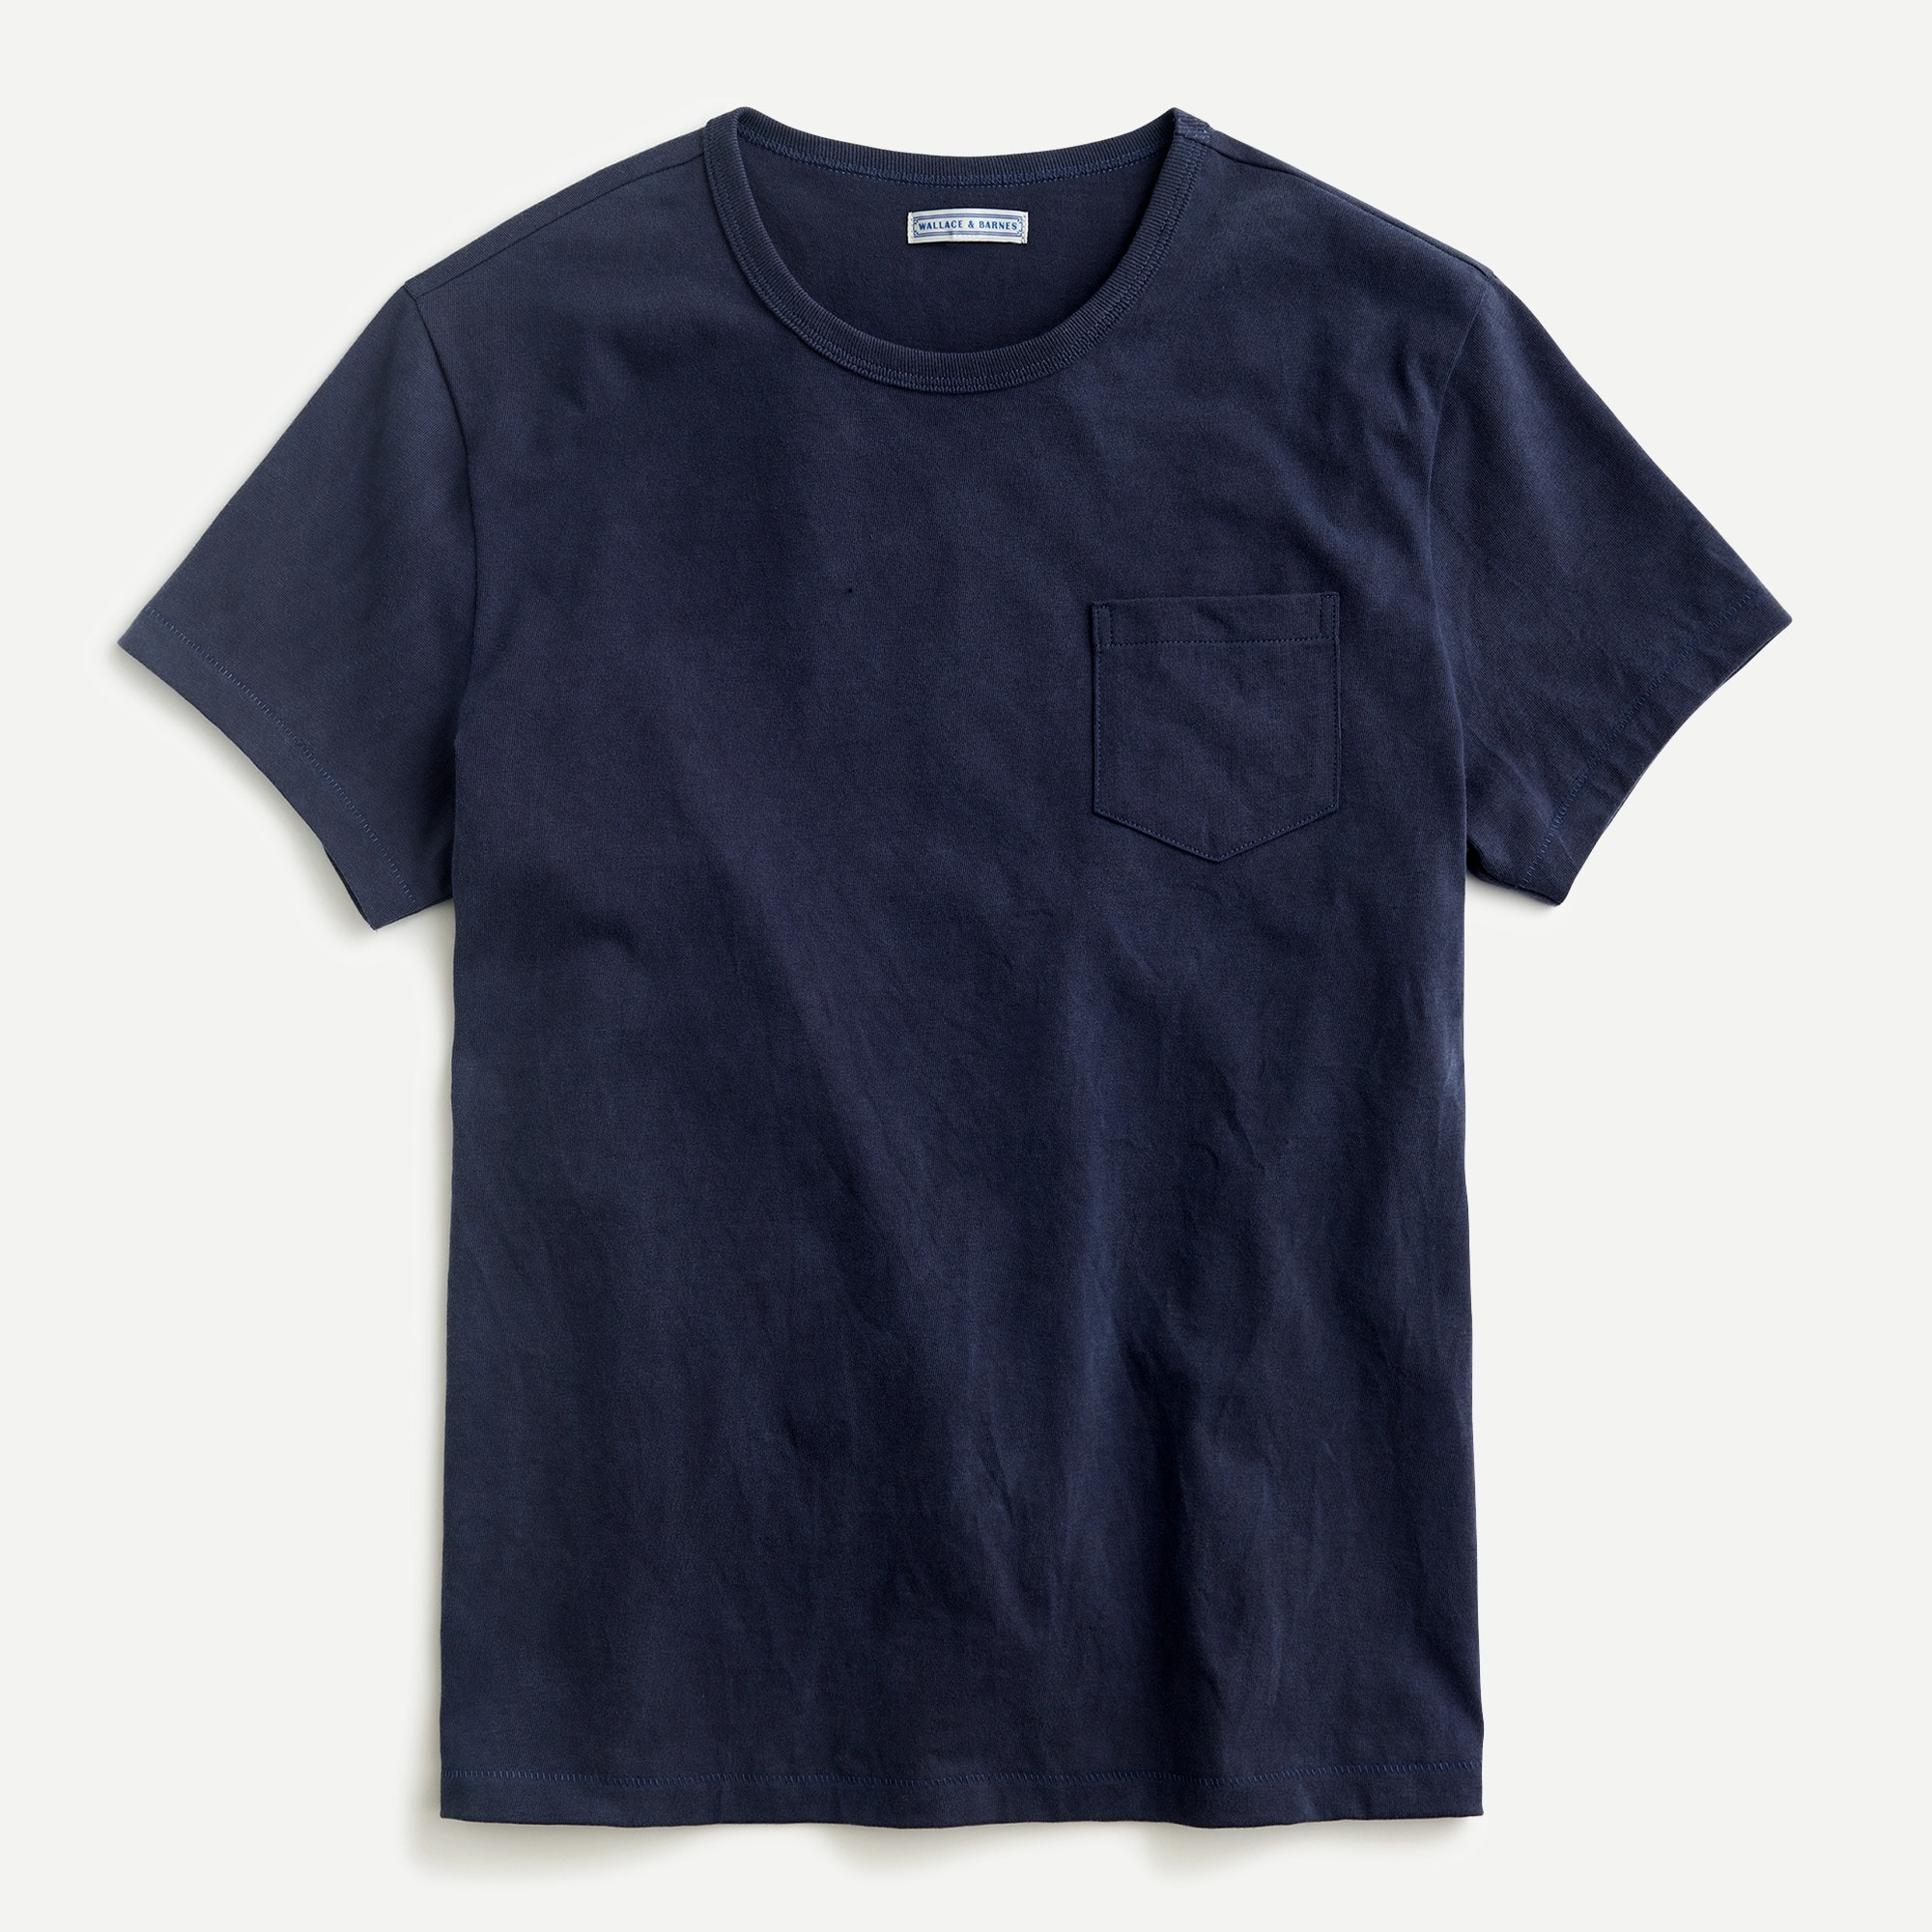 Wallace & Barnes tubular T-shirt